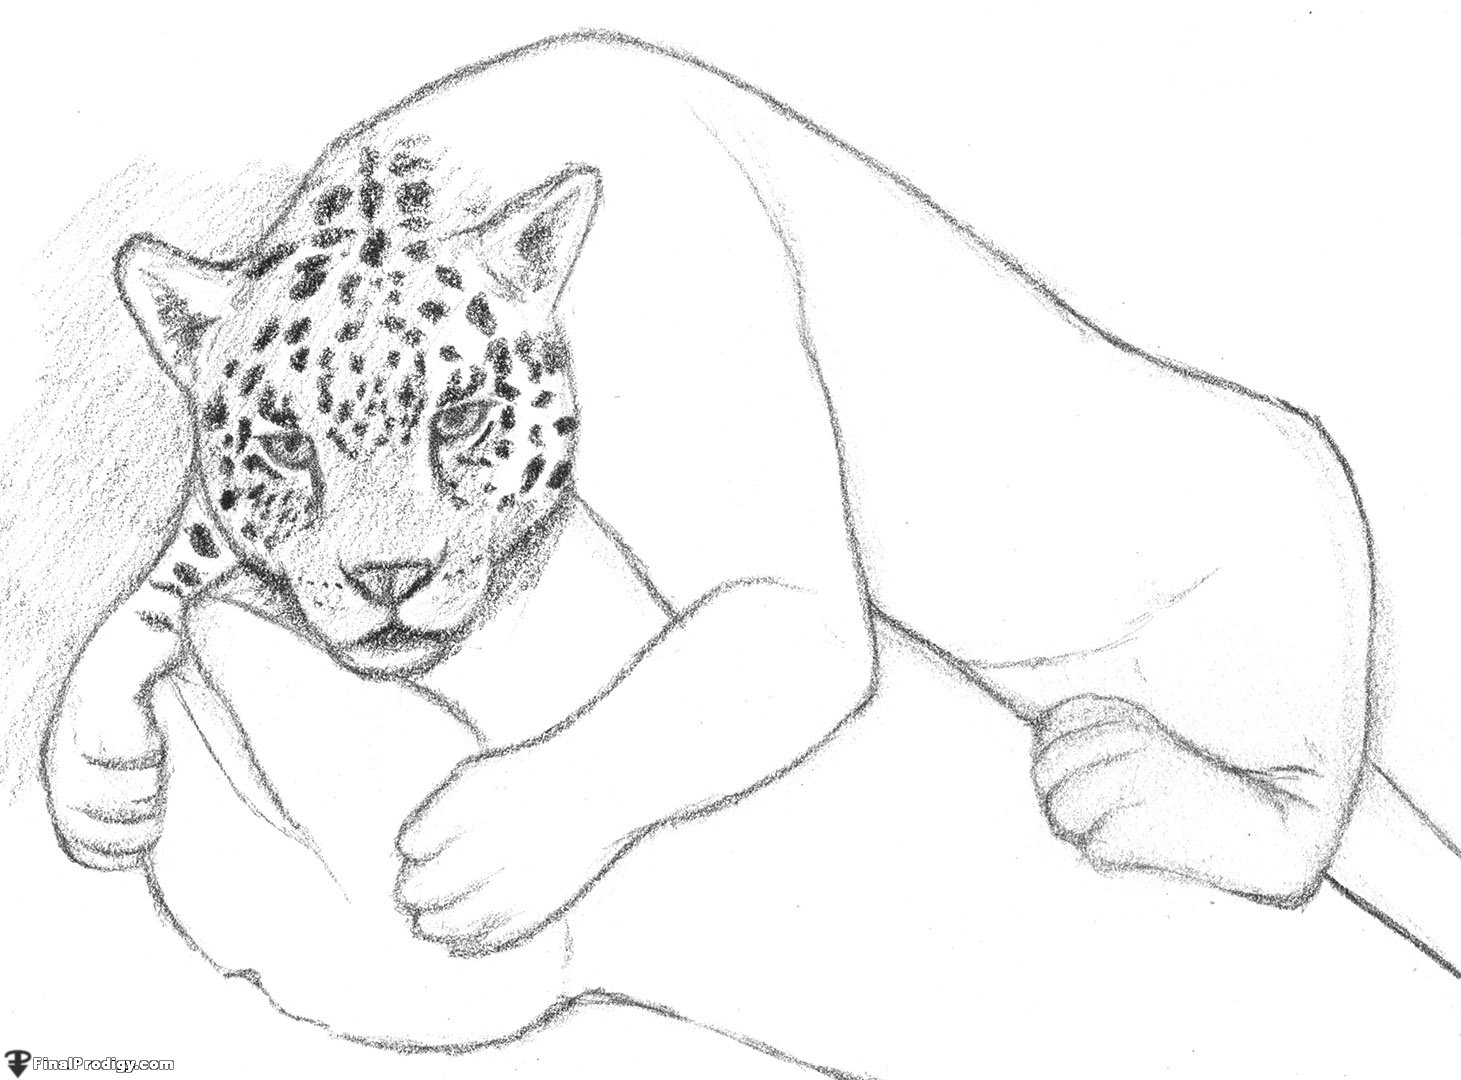 using a soft pencil 5b begin adding rough shading to the drawing start with the head try to make the jaguars spots look natural by not making the